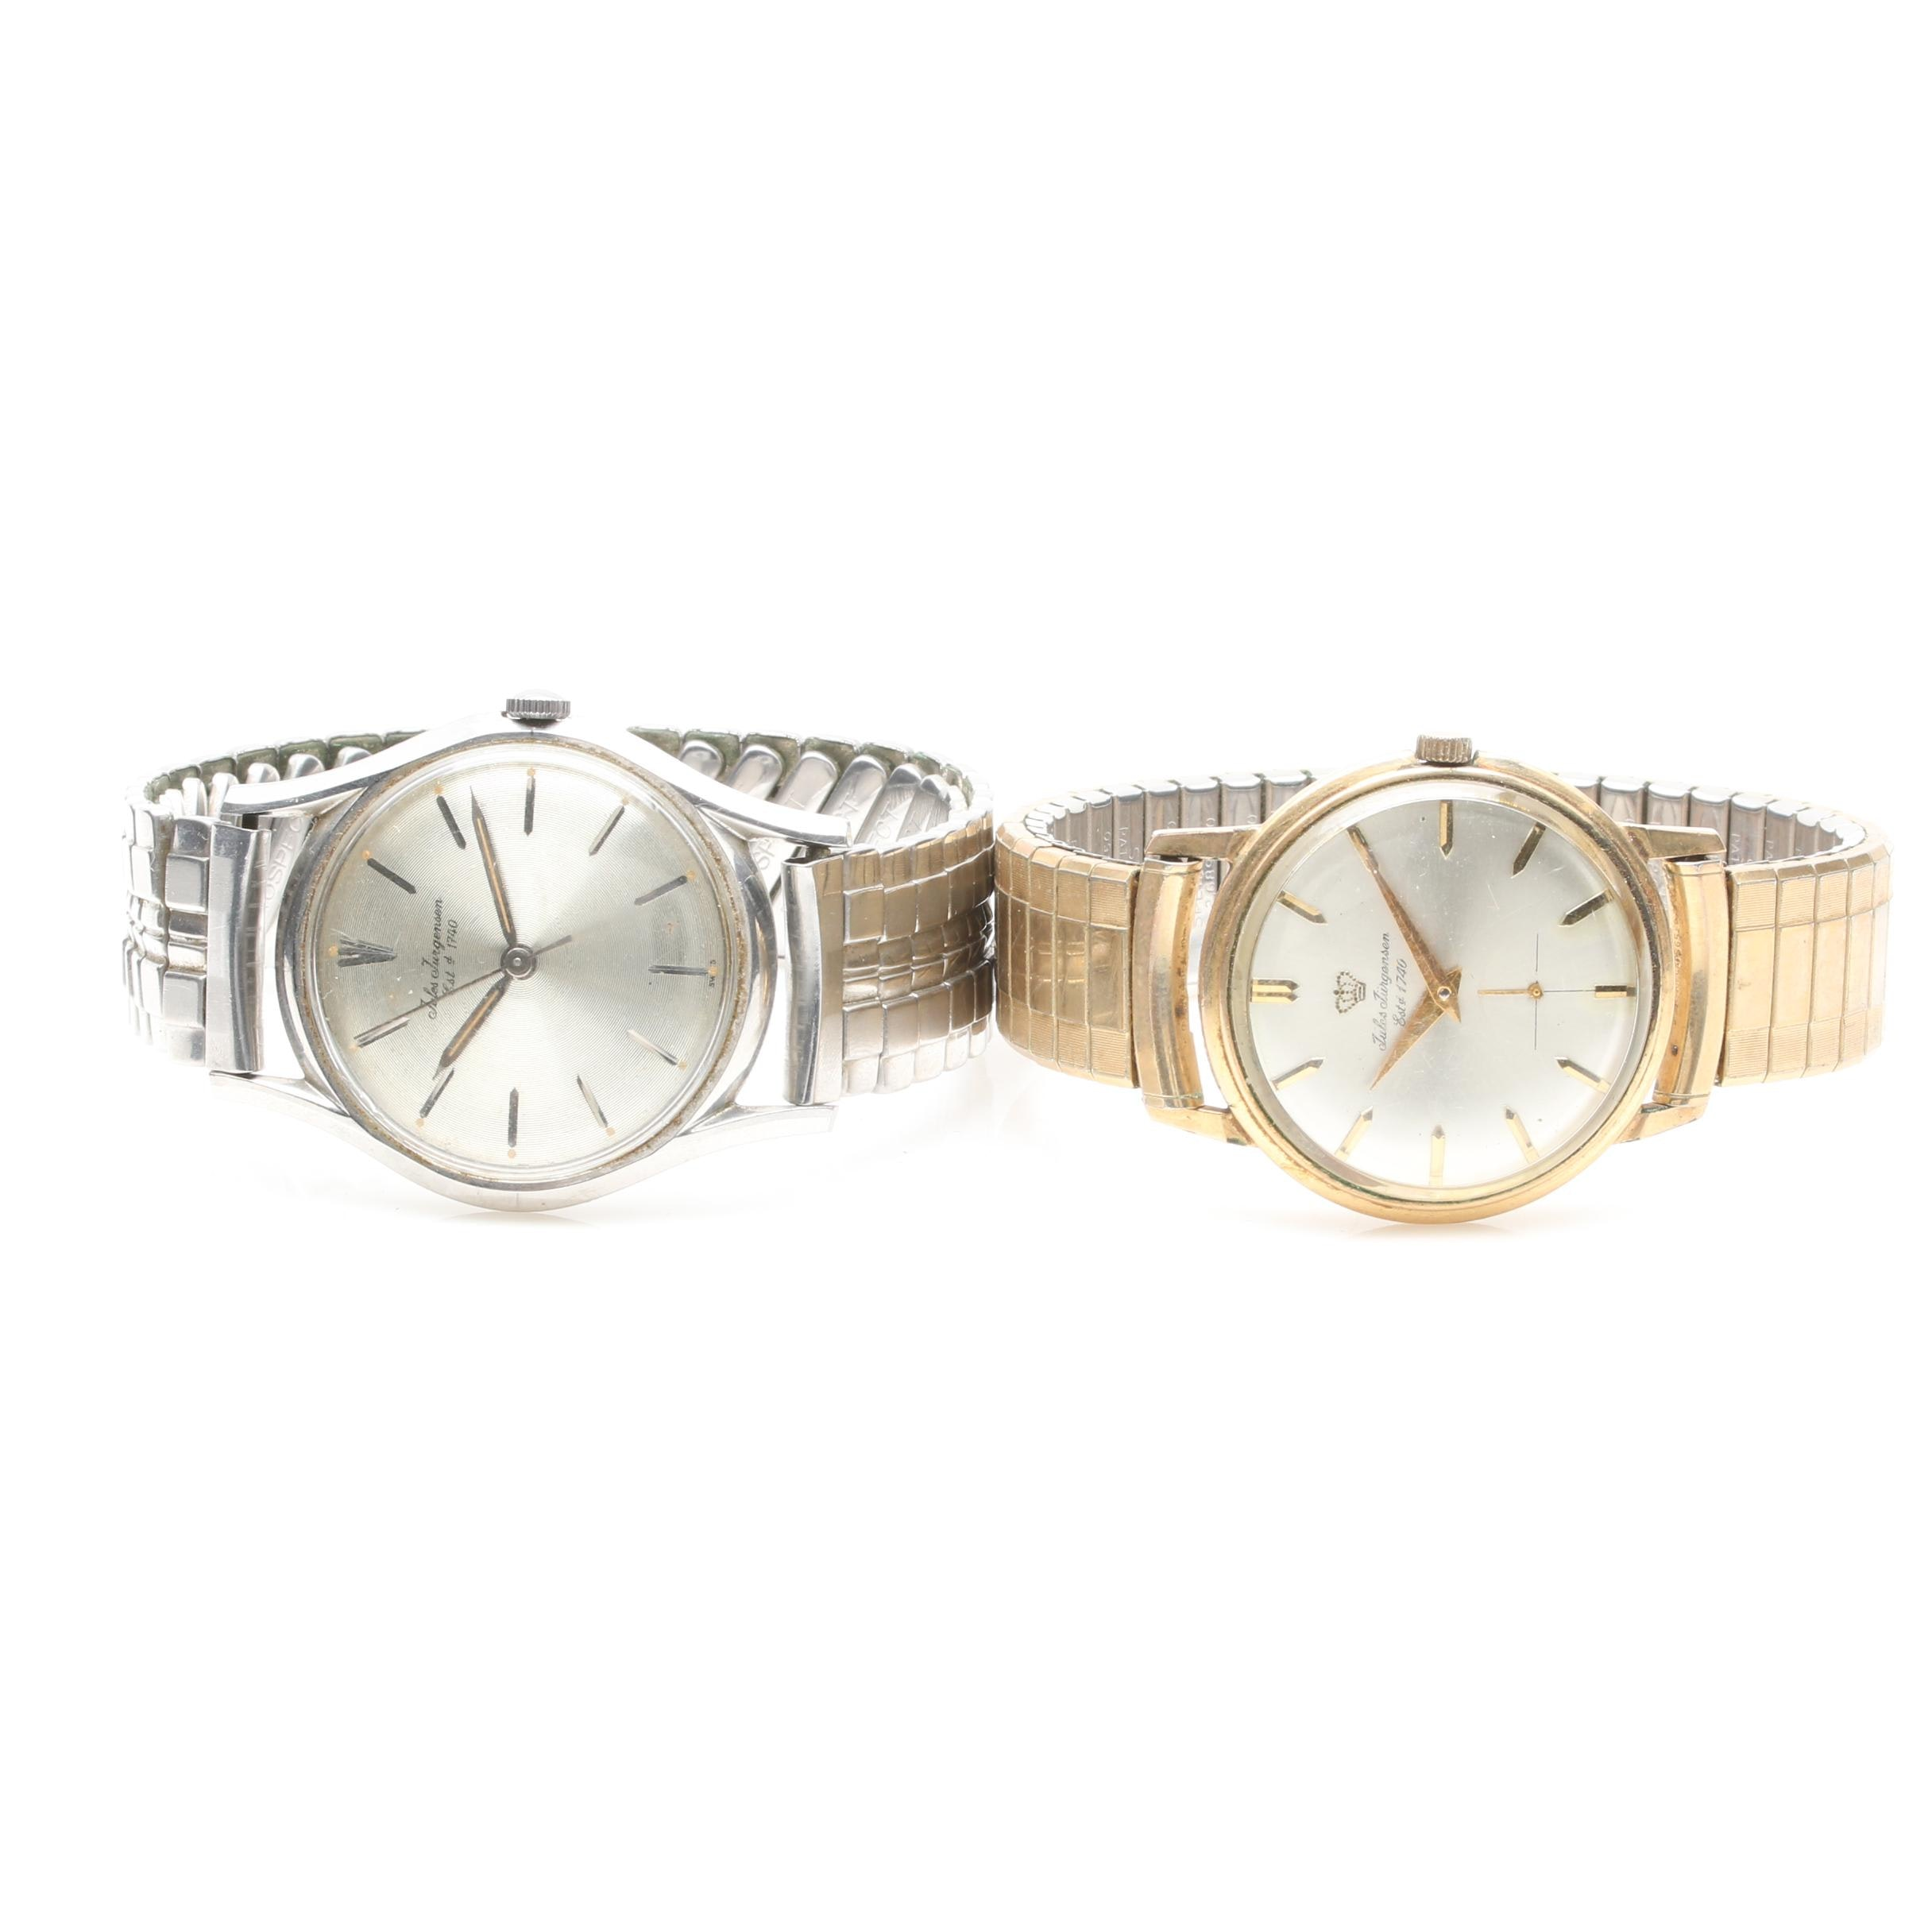 Juled Jurgenson Stainless Steel and 10K Gold Fill Watch Selection